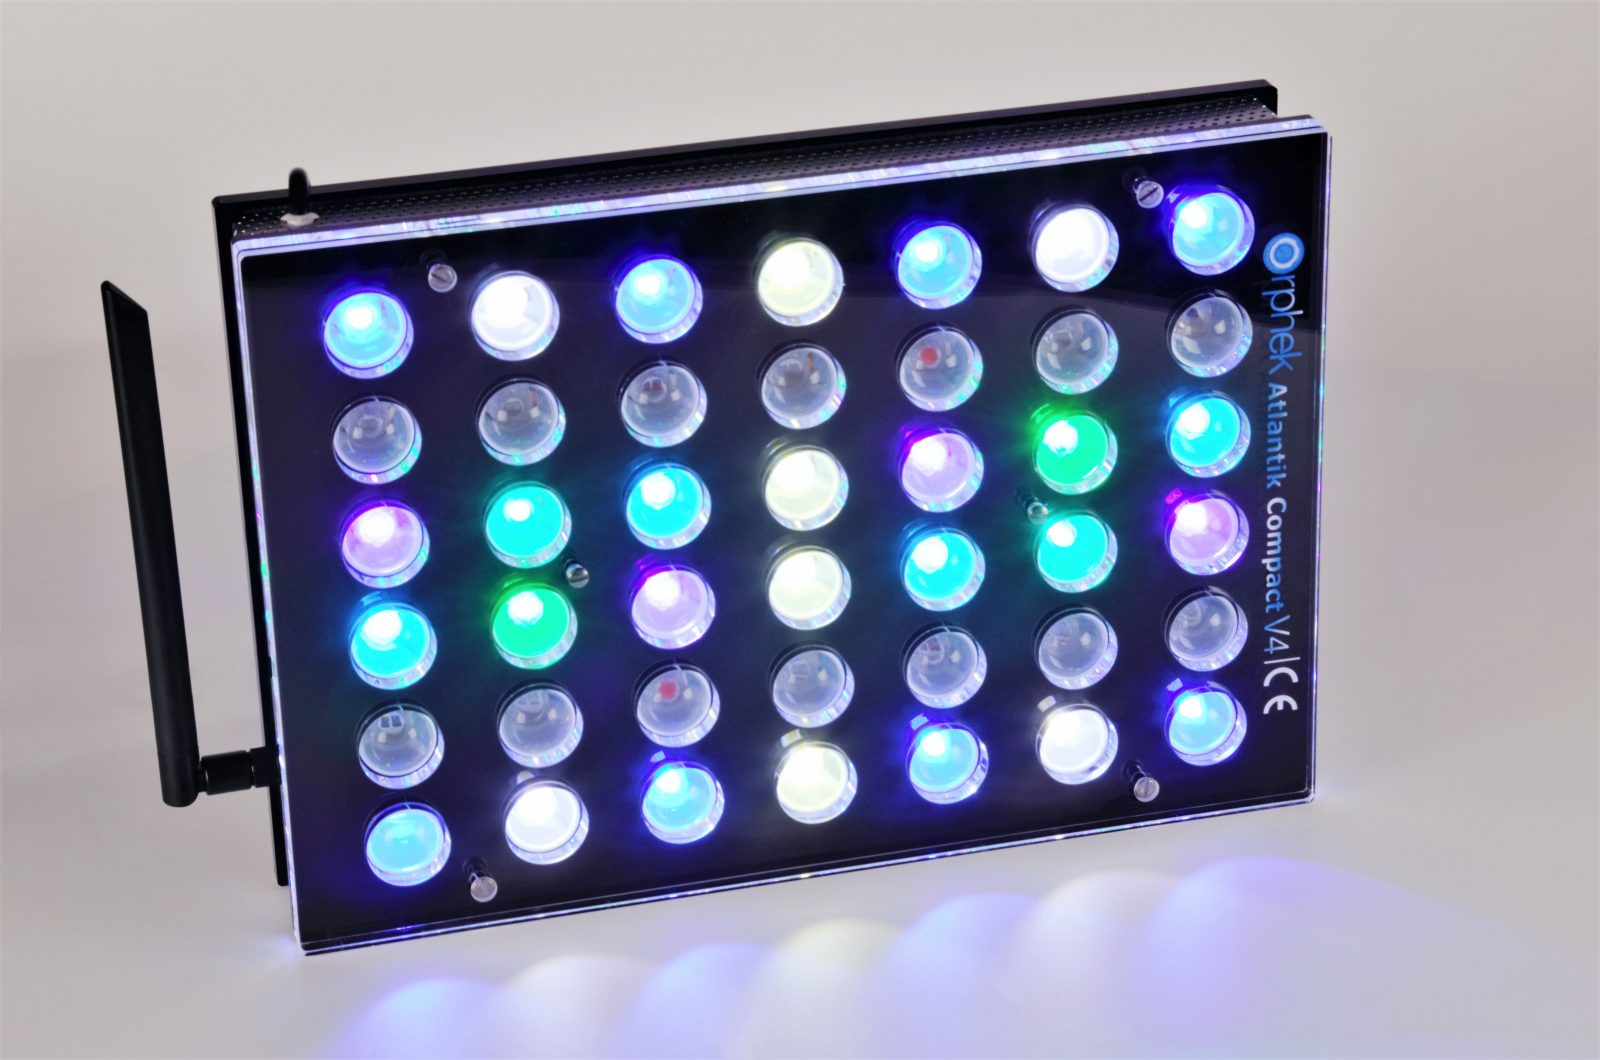 Orphek-Aquarium-LED-Beleuchtung-Atlantik -Compact-V4-light -on -channel 1 + 2